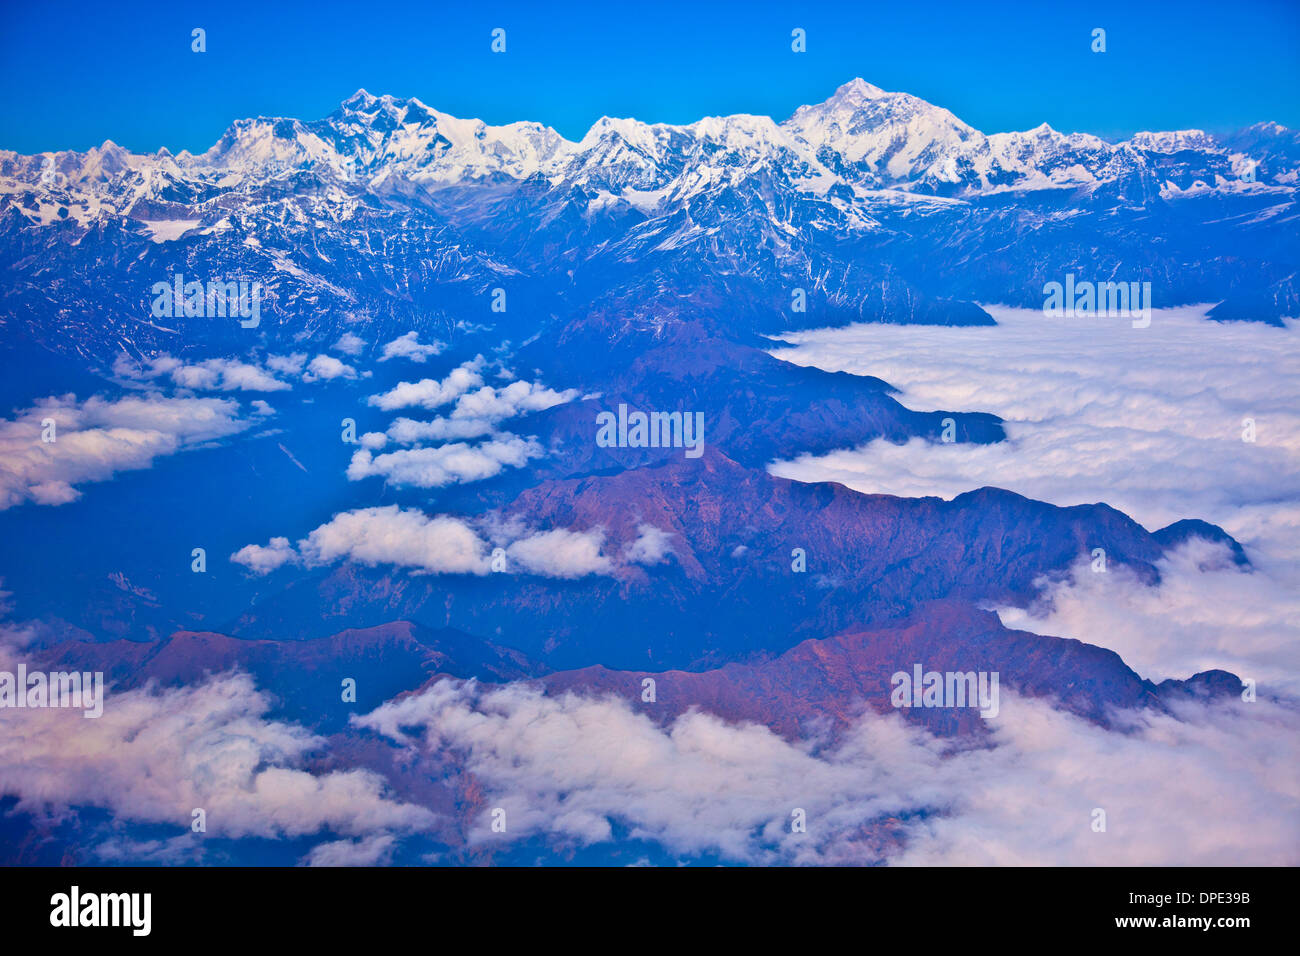 Mt. Everest and surrounding peaks, Sagamatha National Park, Nepal. World's highest mountain, Himalaya Mountains Stock Photo